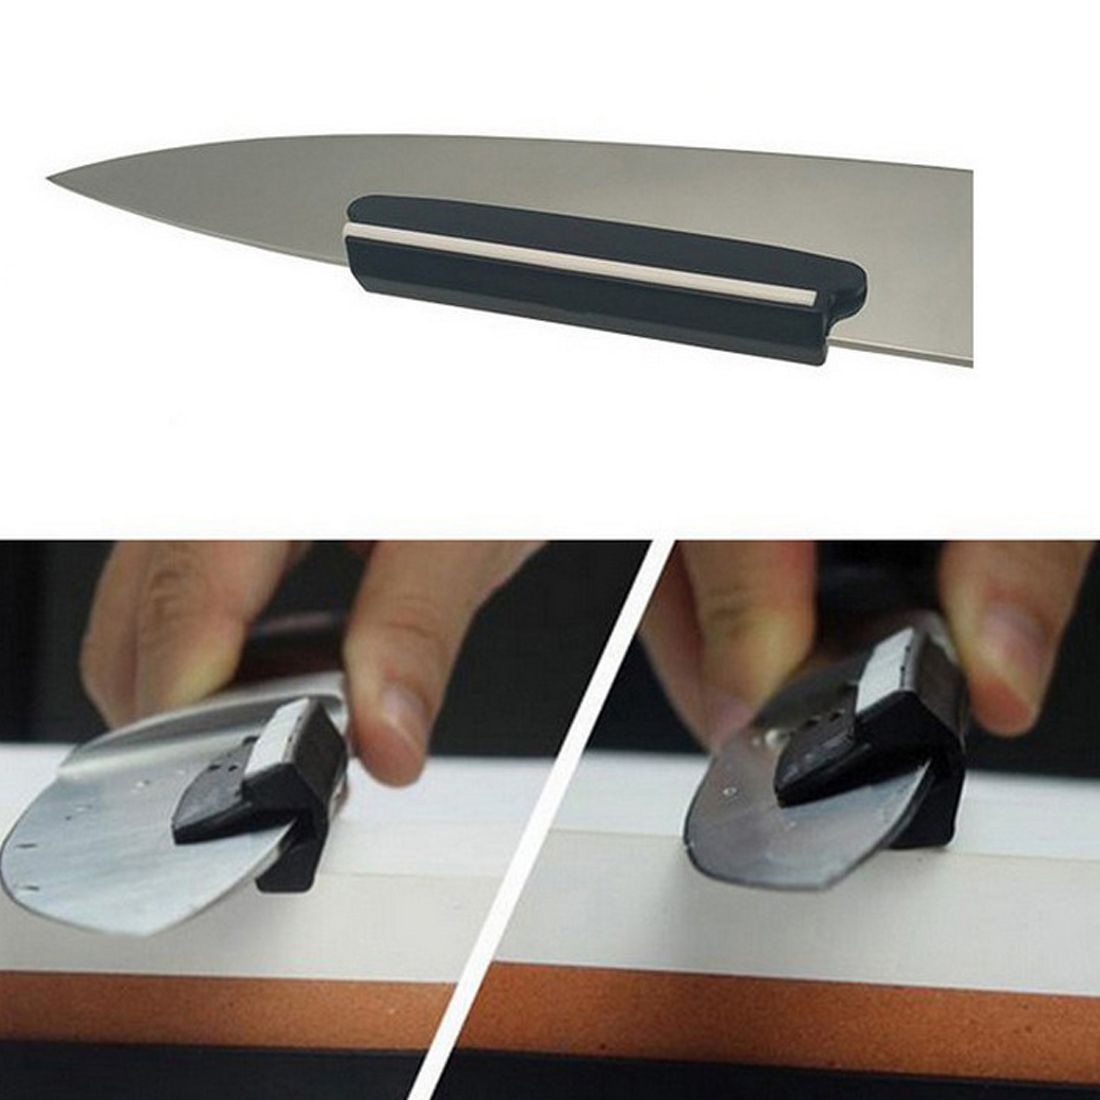 High Best Selling Knife Sharpener Angle Guide Whetstone For Sharpening Home Living Practical Accessories Tools